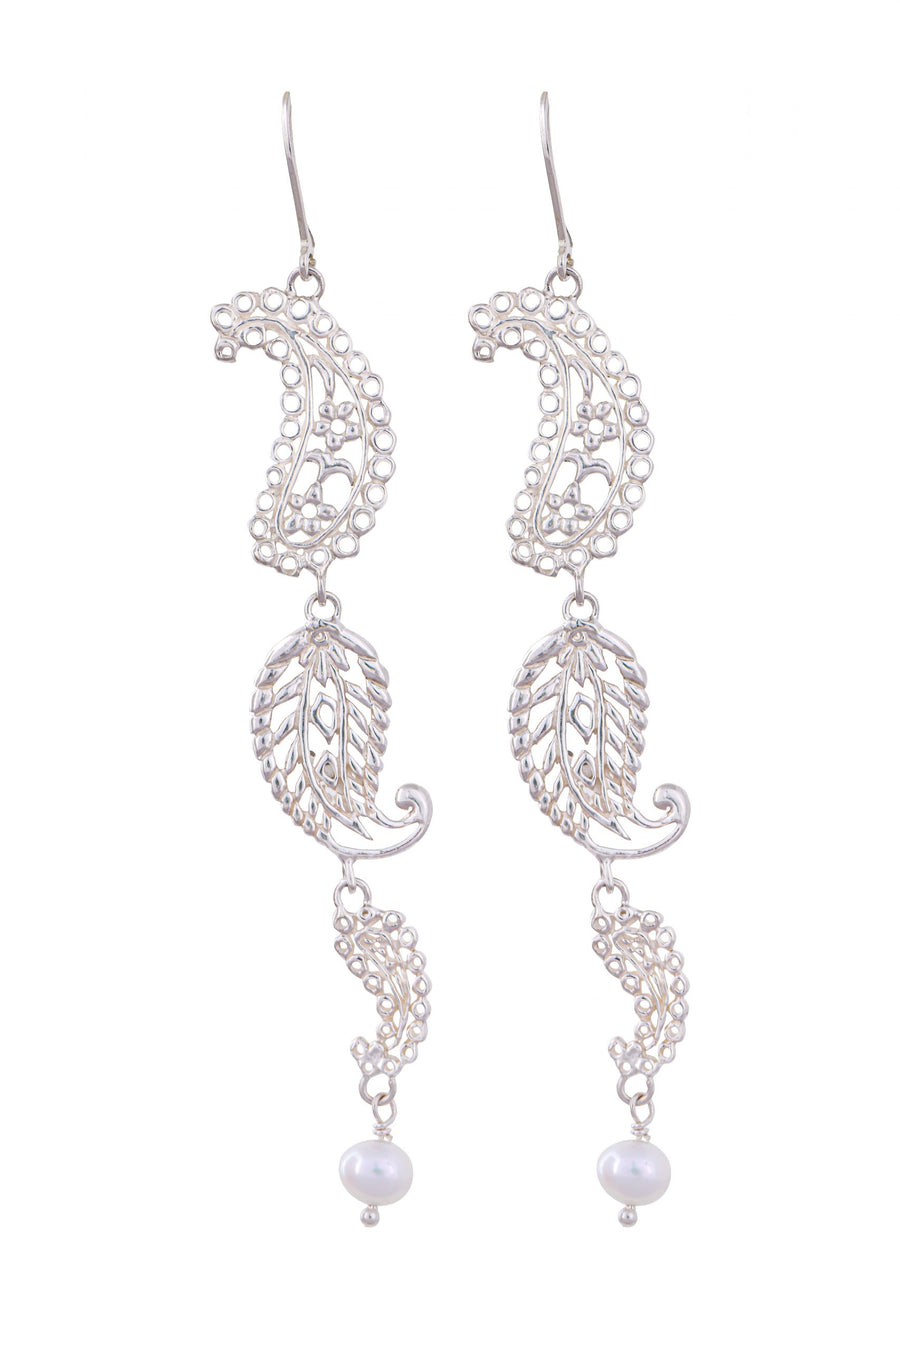 Sterling Silver Earrings (3760WP)